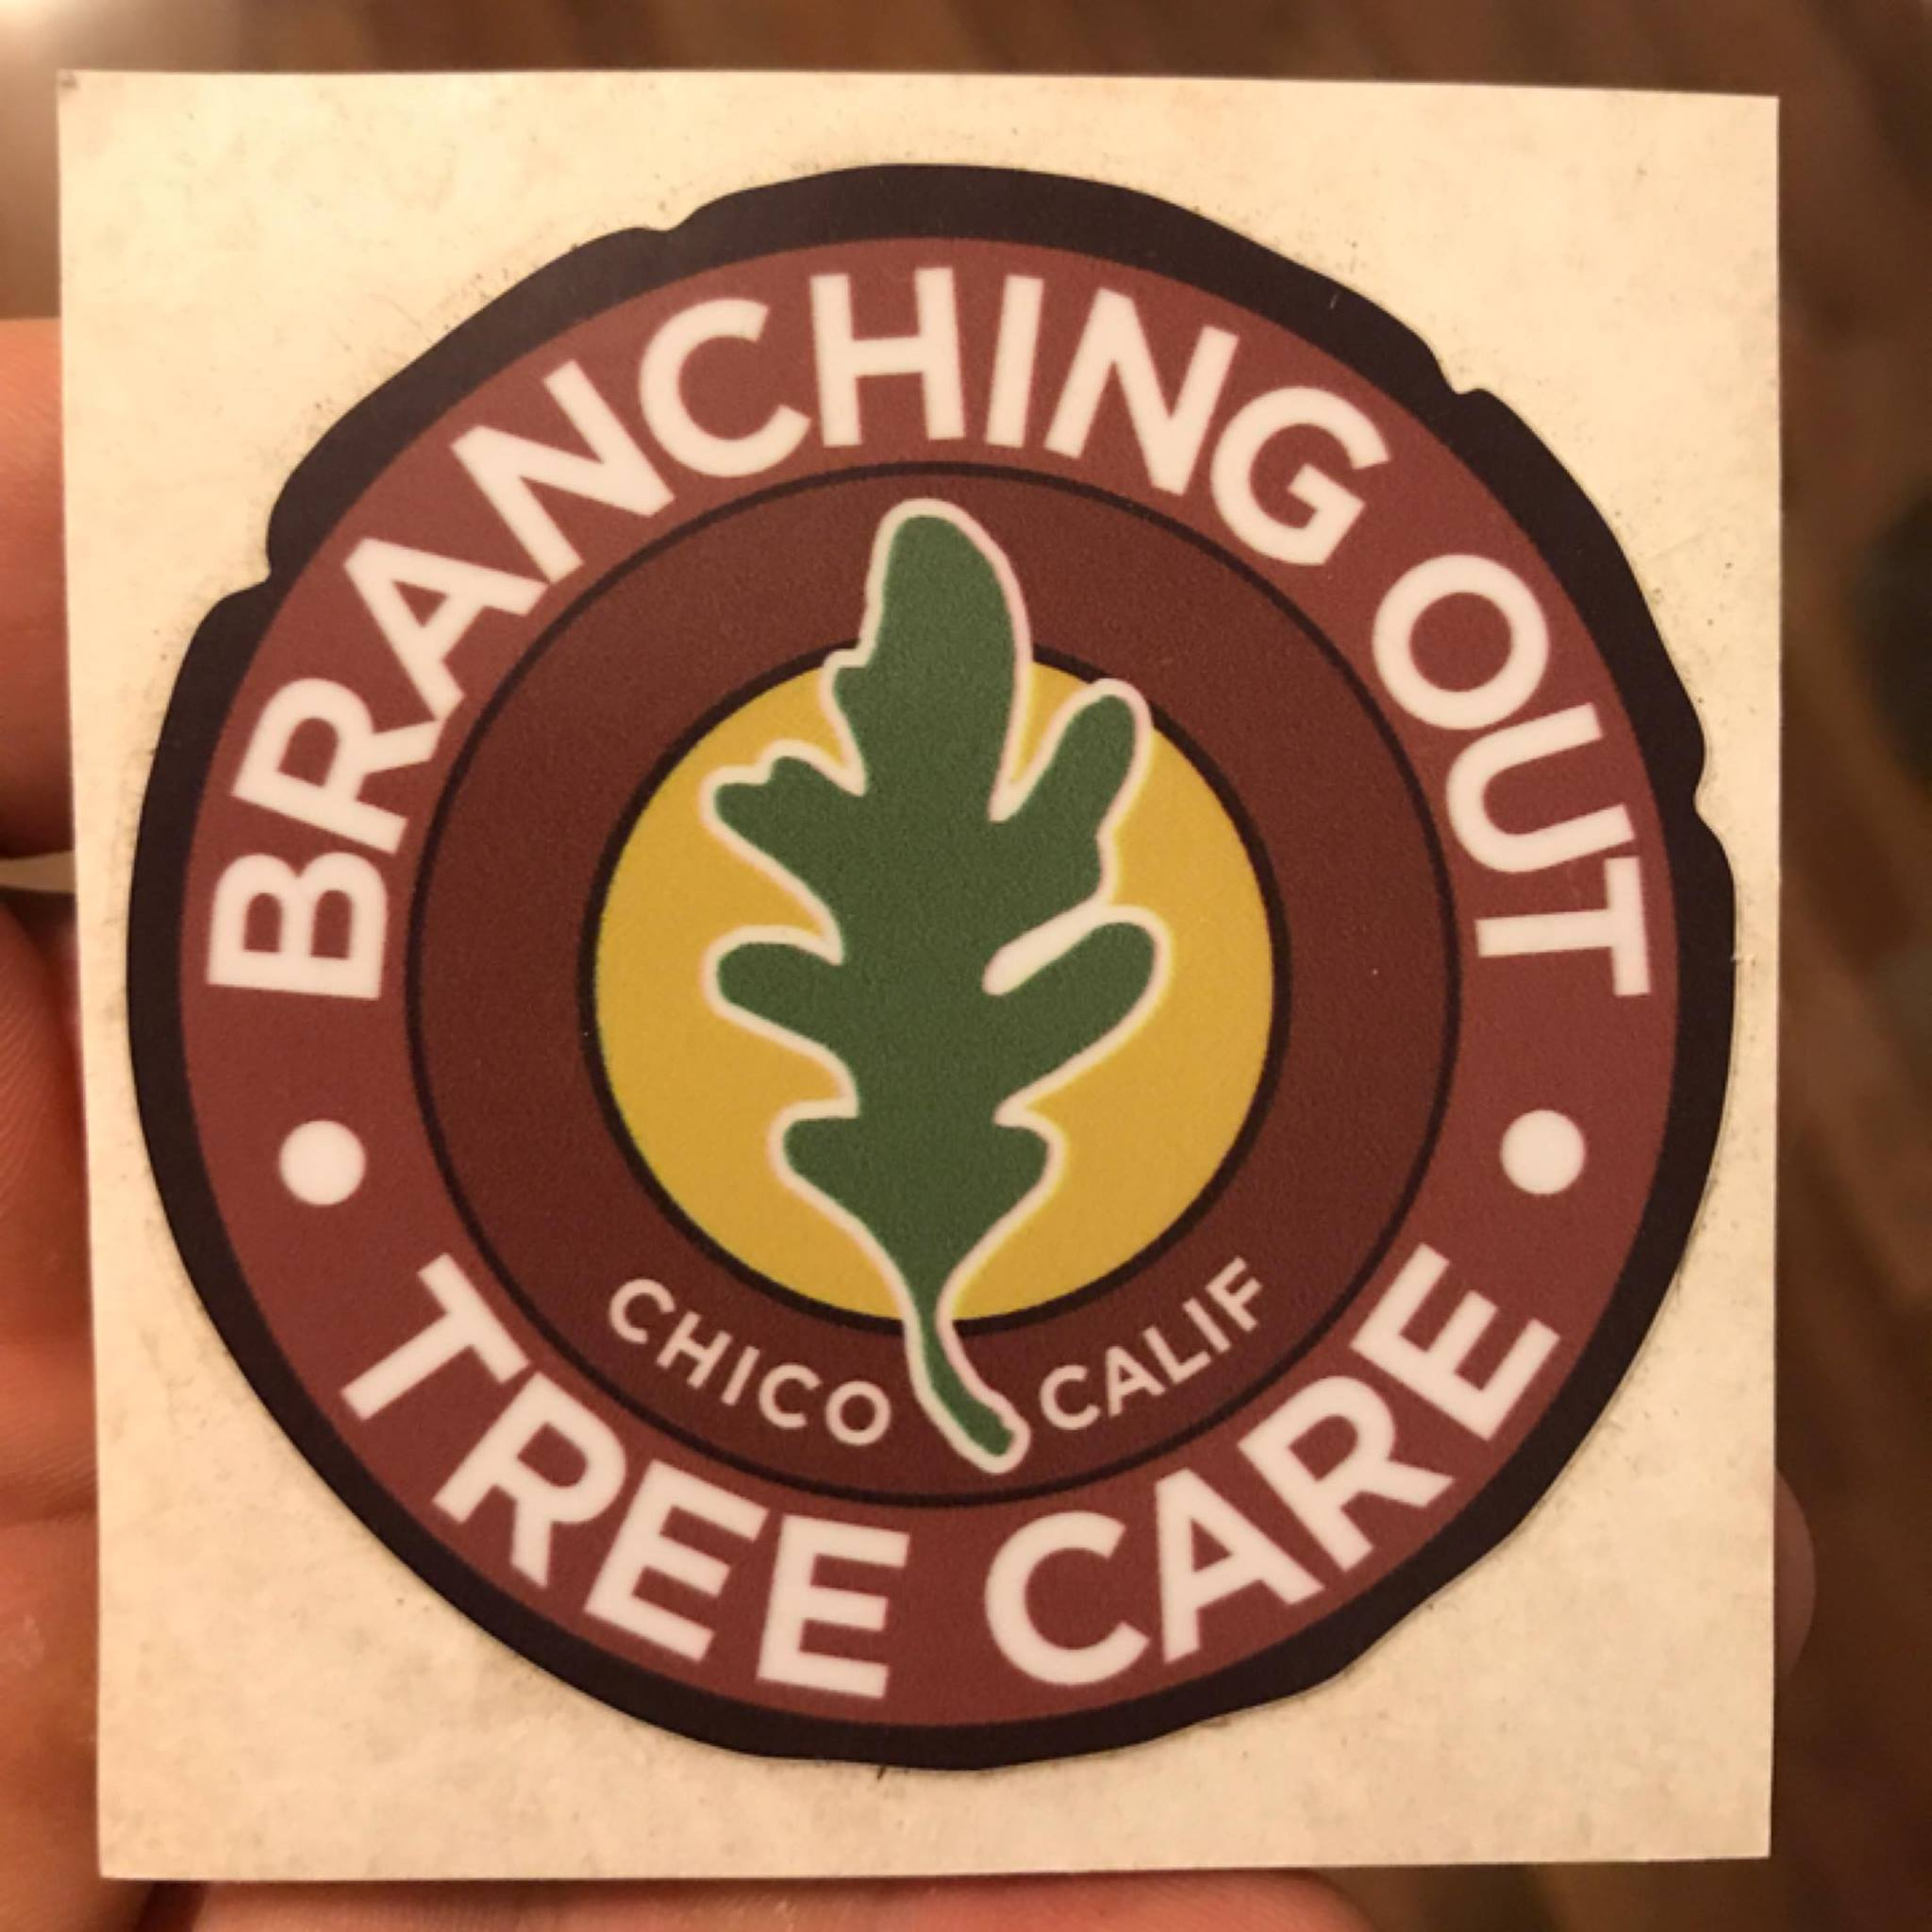 Branching Out Tree Care